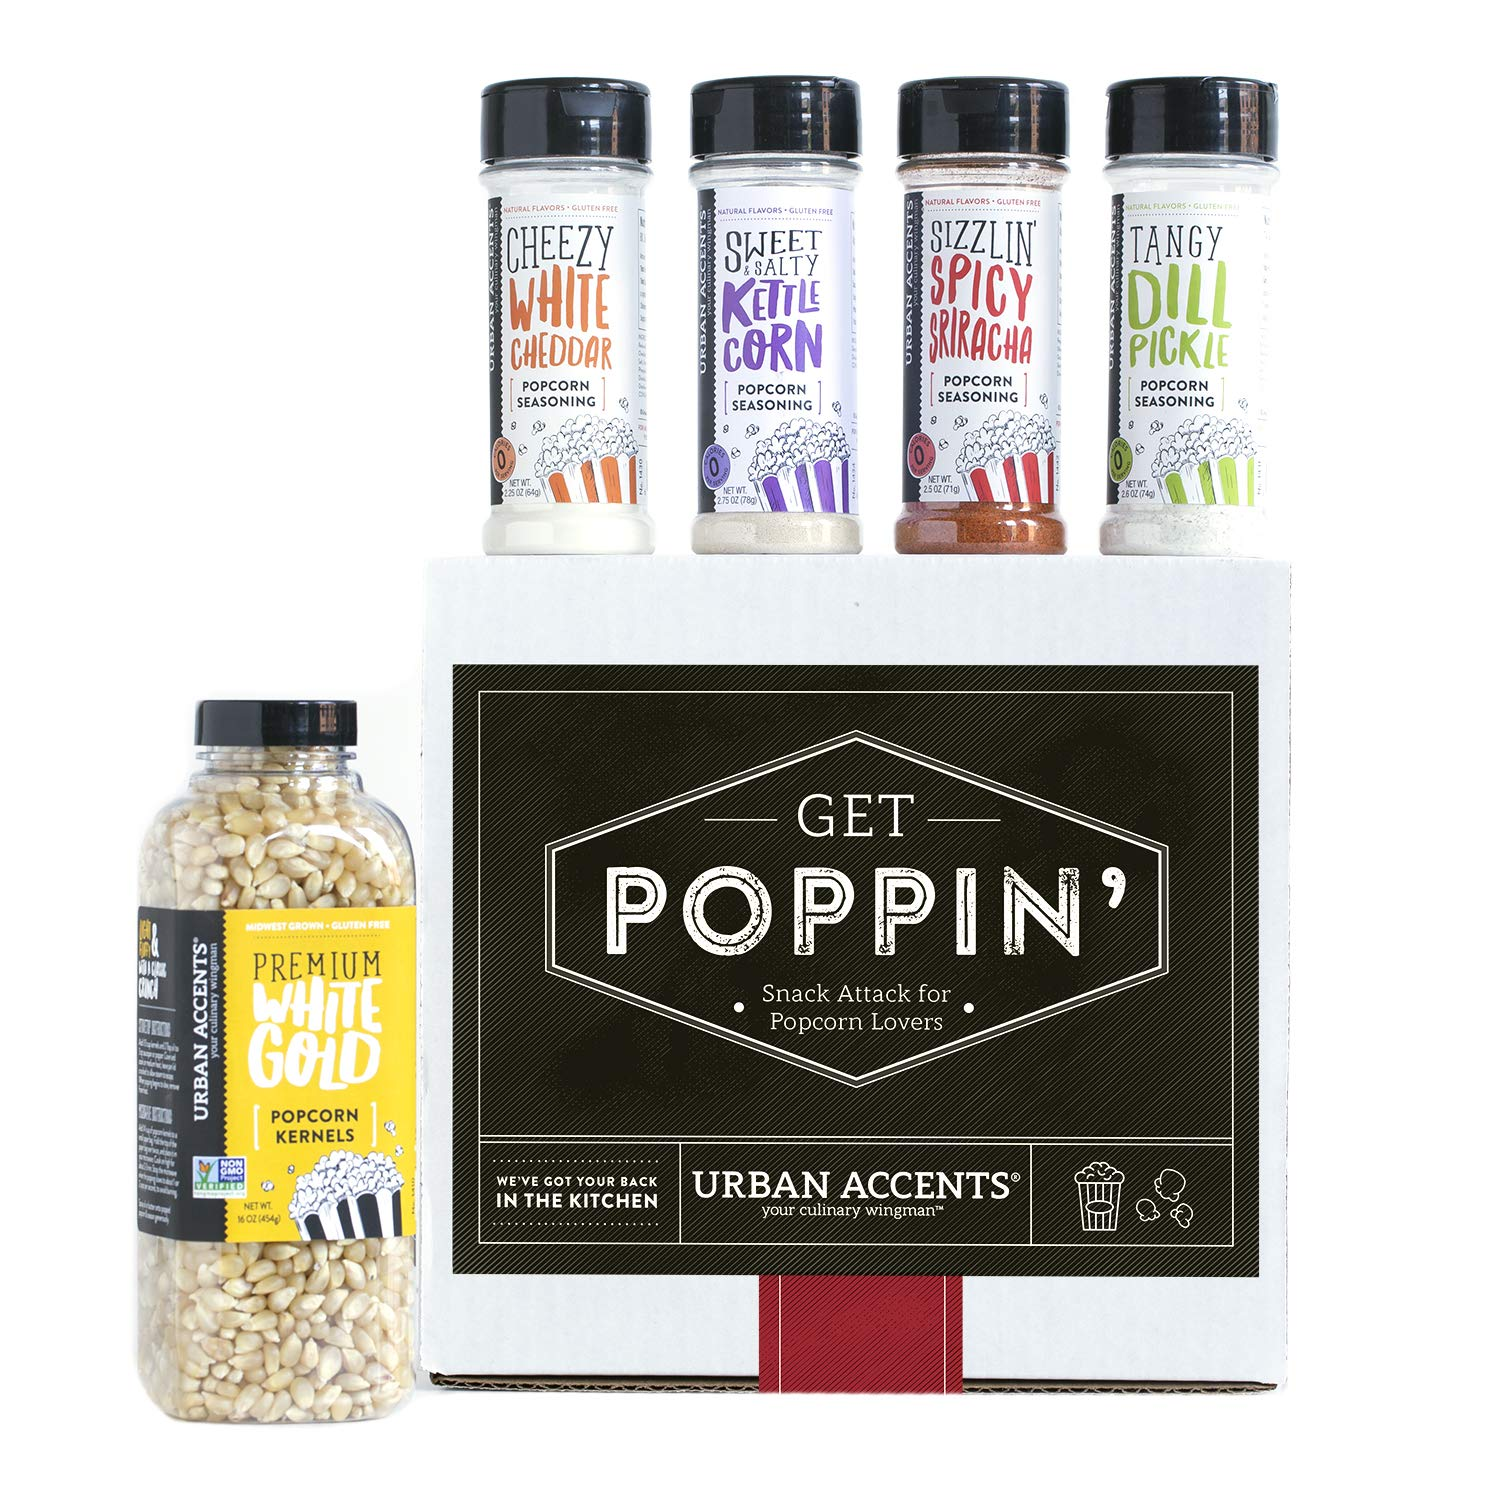 CDM product Urban Accents GET POPPIN', Gourmet Popcorn Seasoning Gift Set (Set of 5) - Delicious Non-GMO Popcorn Kernels and 4 Gourmet Popcorn & Snack Mix Seasonings- Perfect Gift for Any Occasion big image